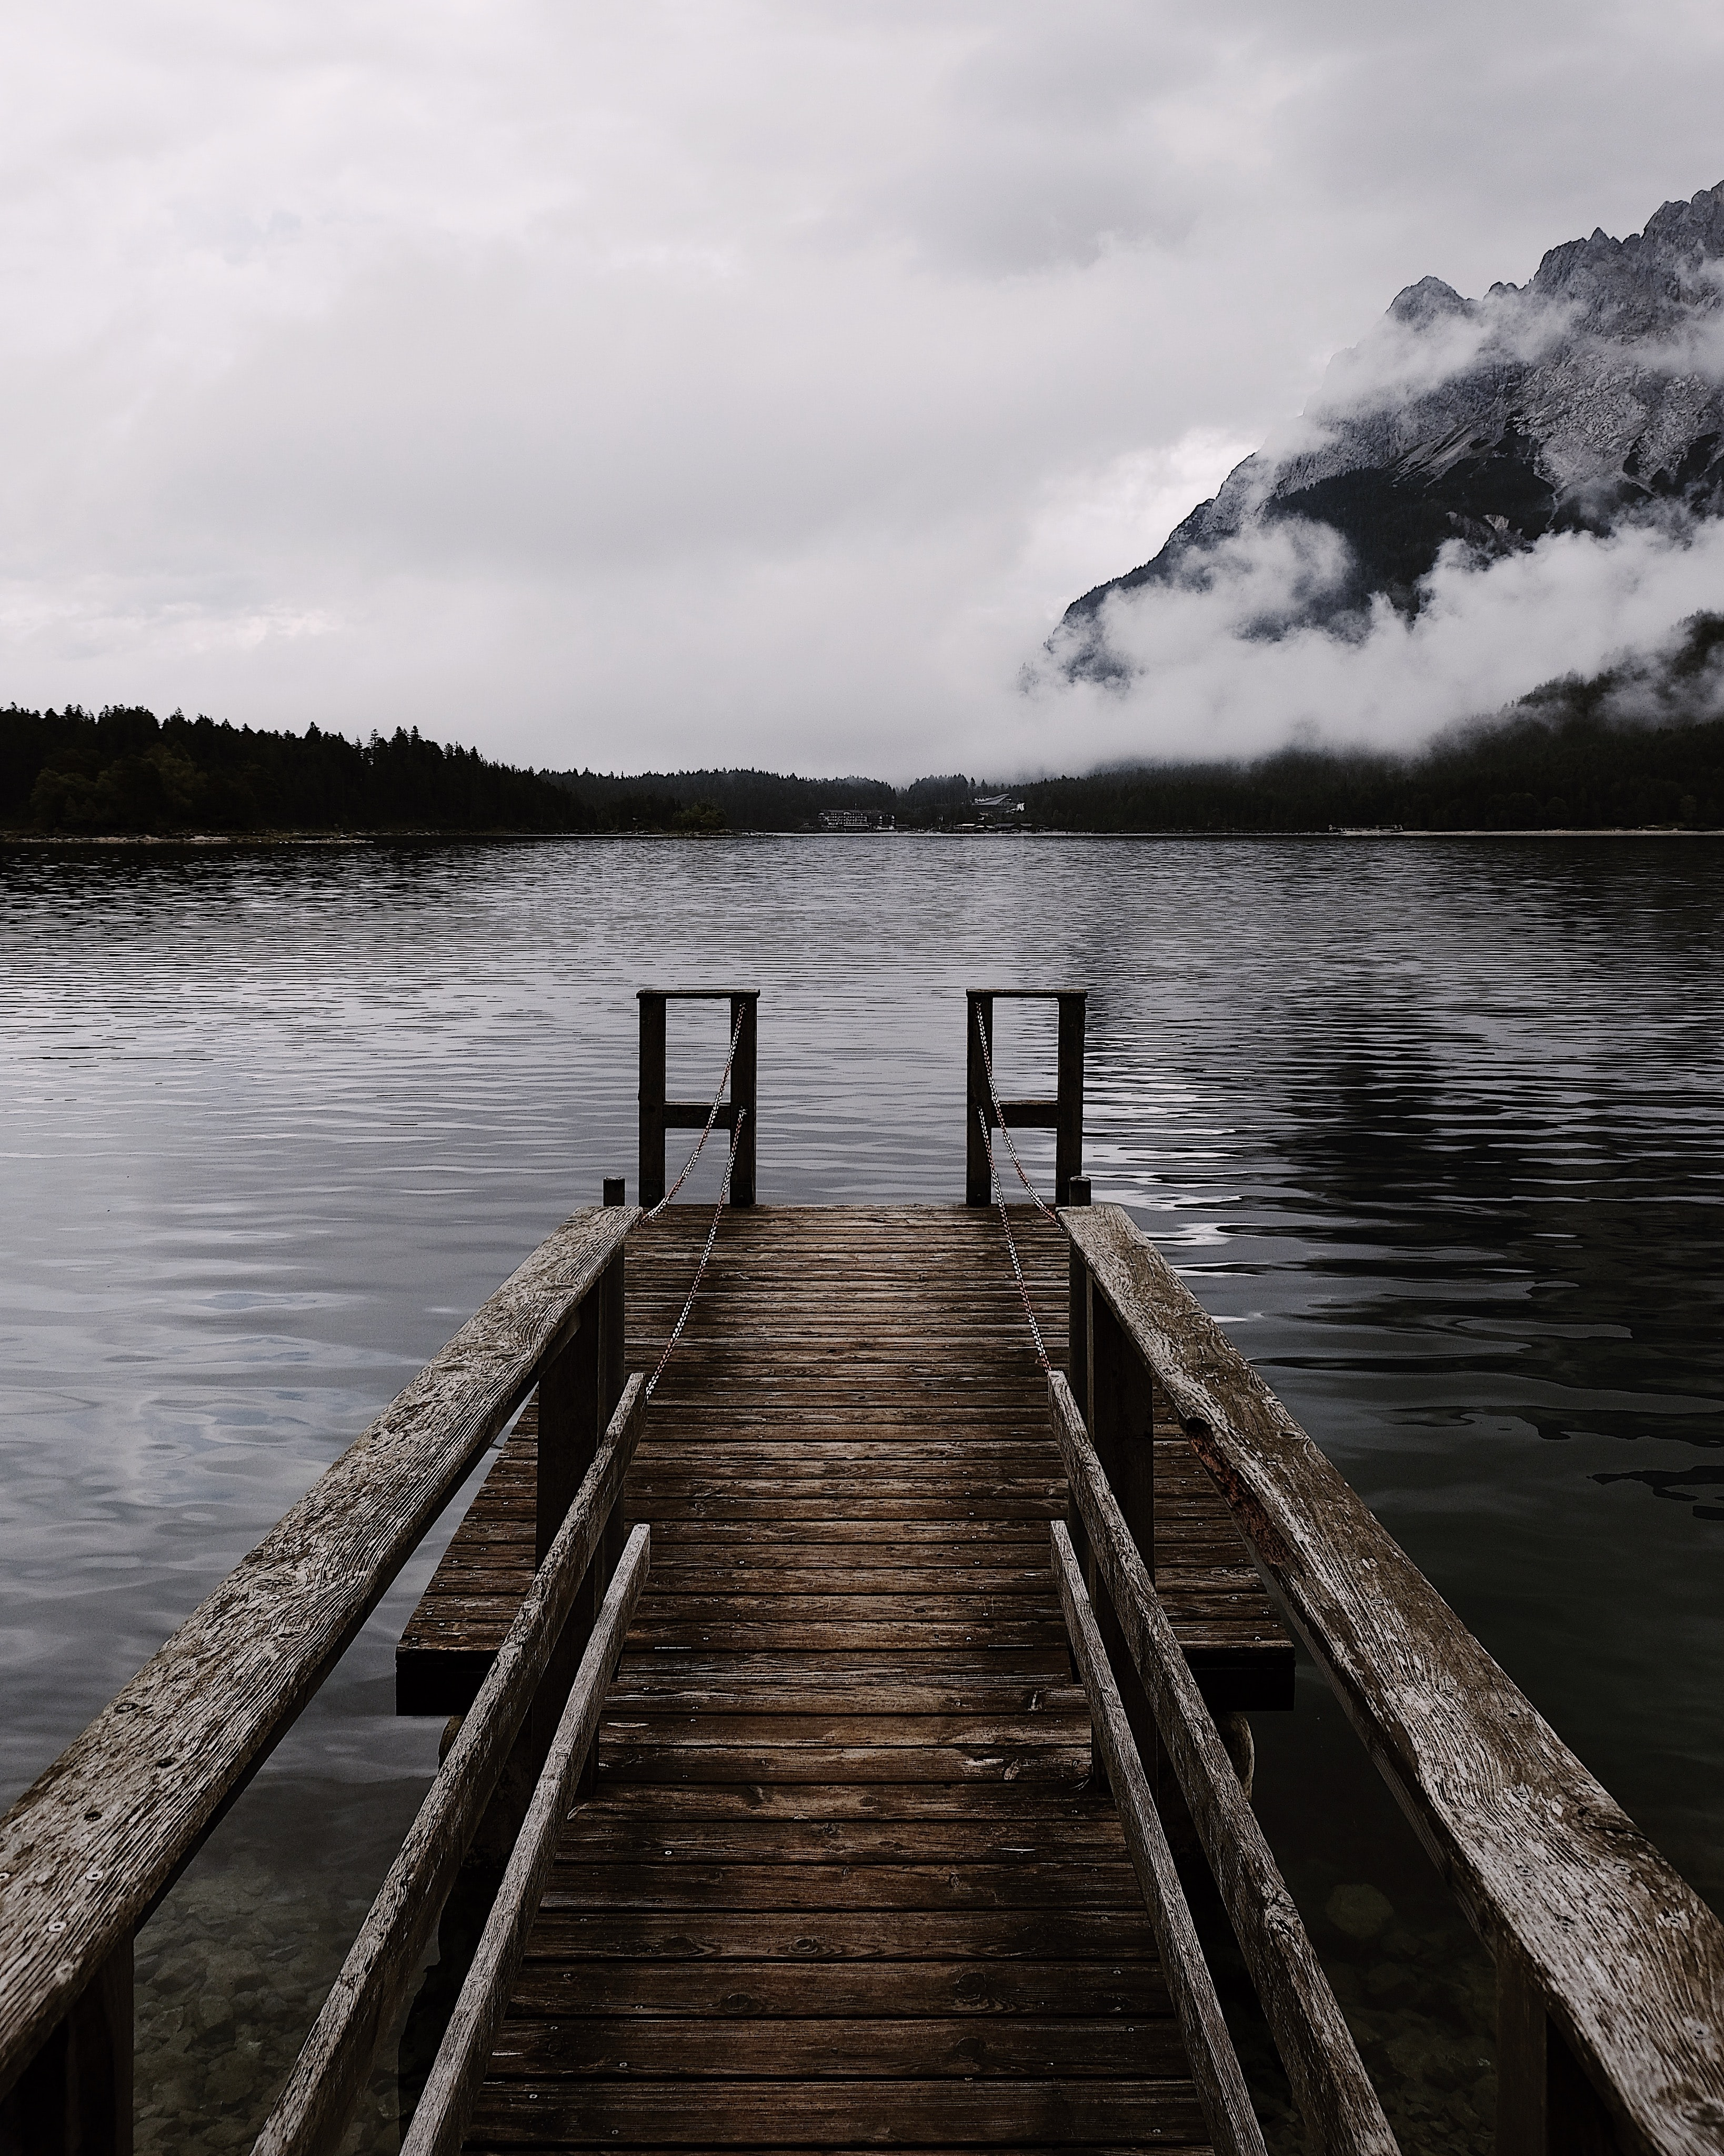 brown wooden dock near mountain at cloudy sky